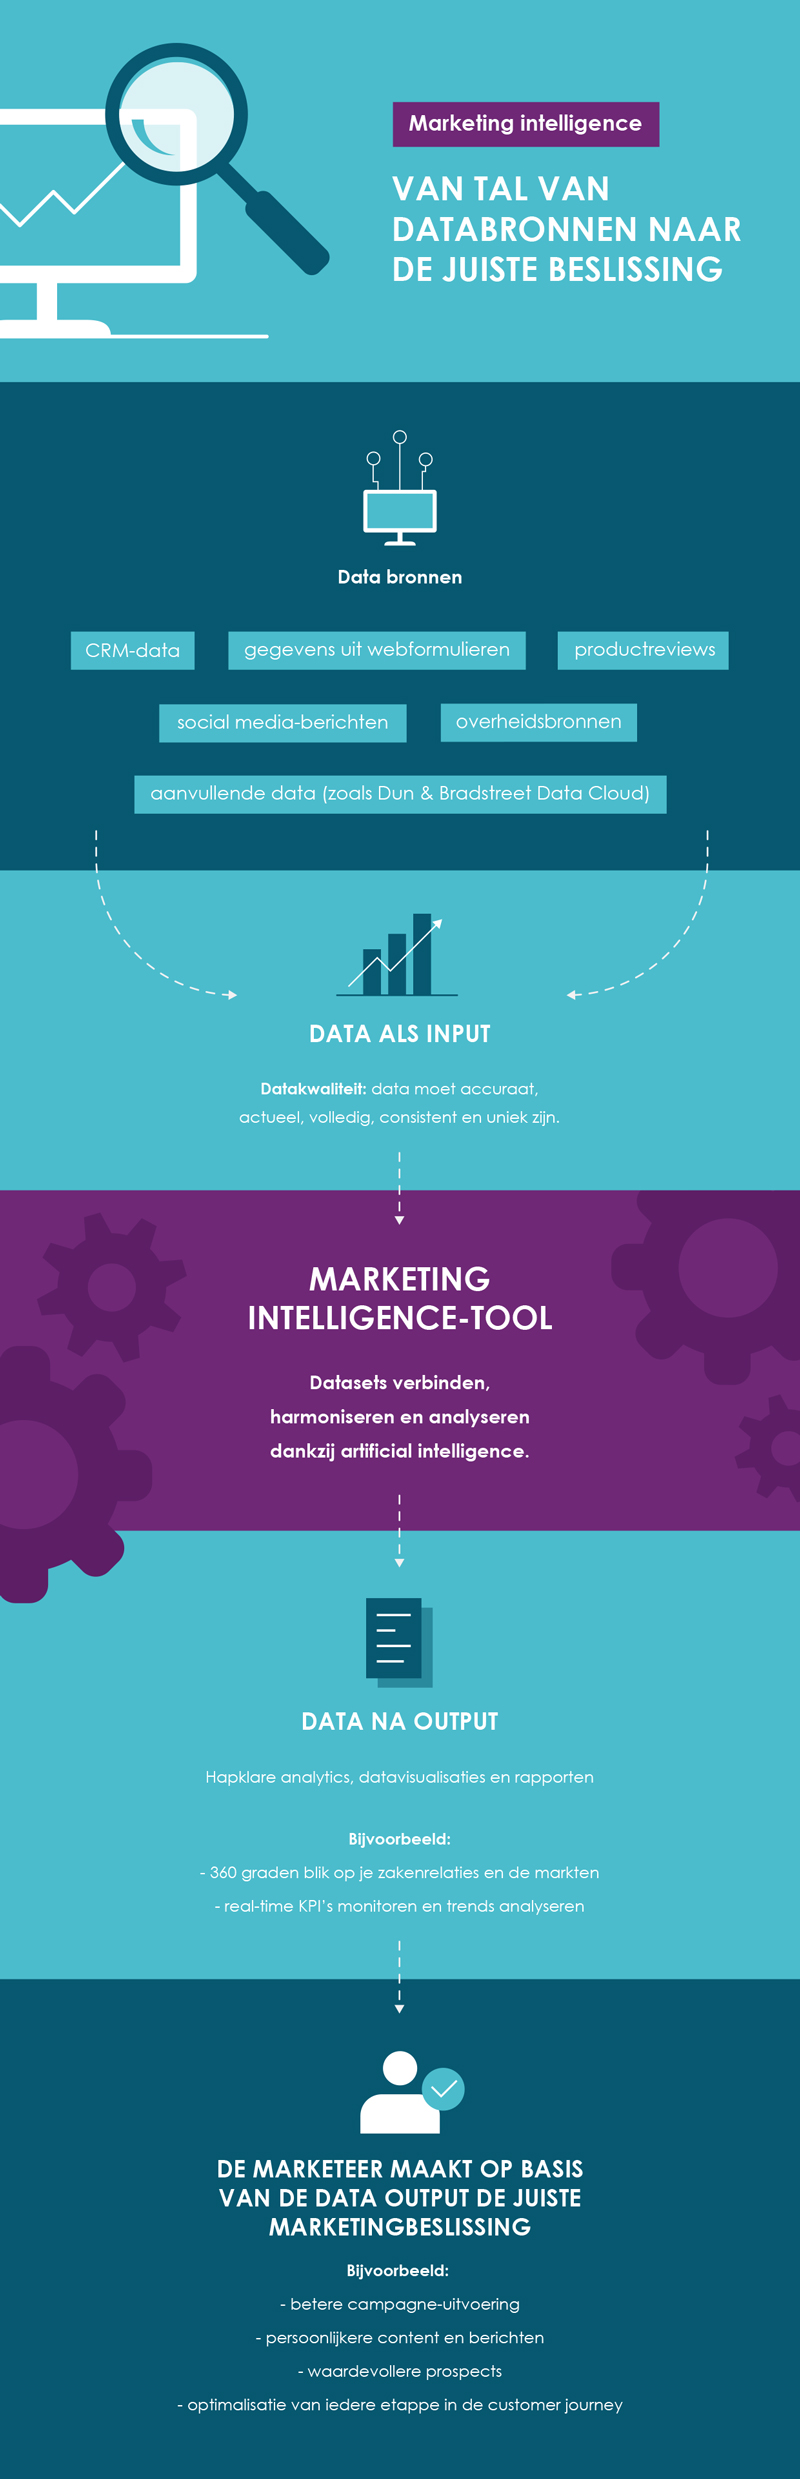 Infographic: Marketing Intelligence - from numerous data sources to the right decision